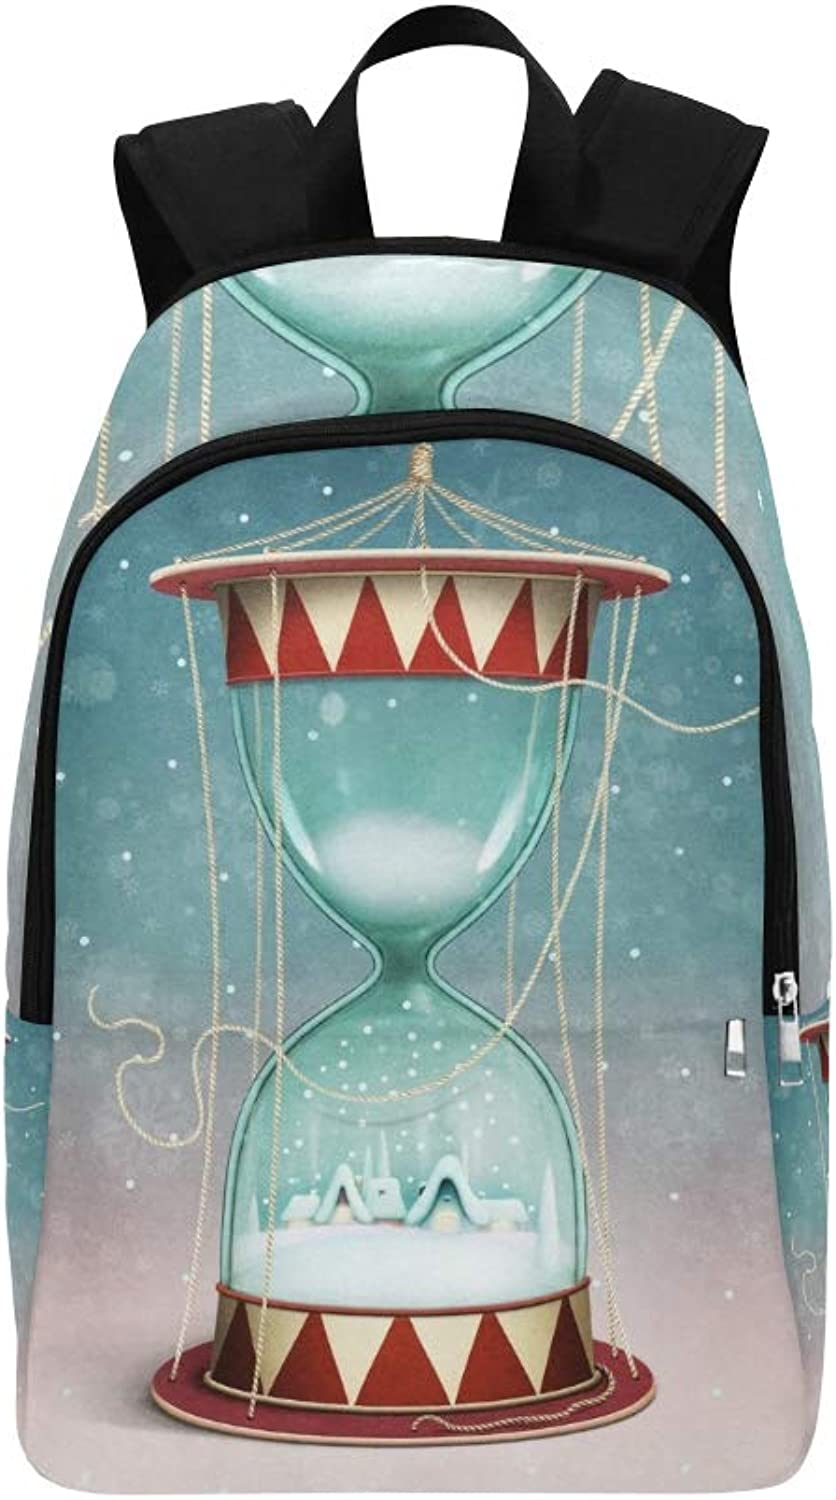 Holiday Greeting Card Poster Christmas New Casual Daypack Travel Bag College School Backpack for Mens and Women